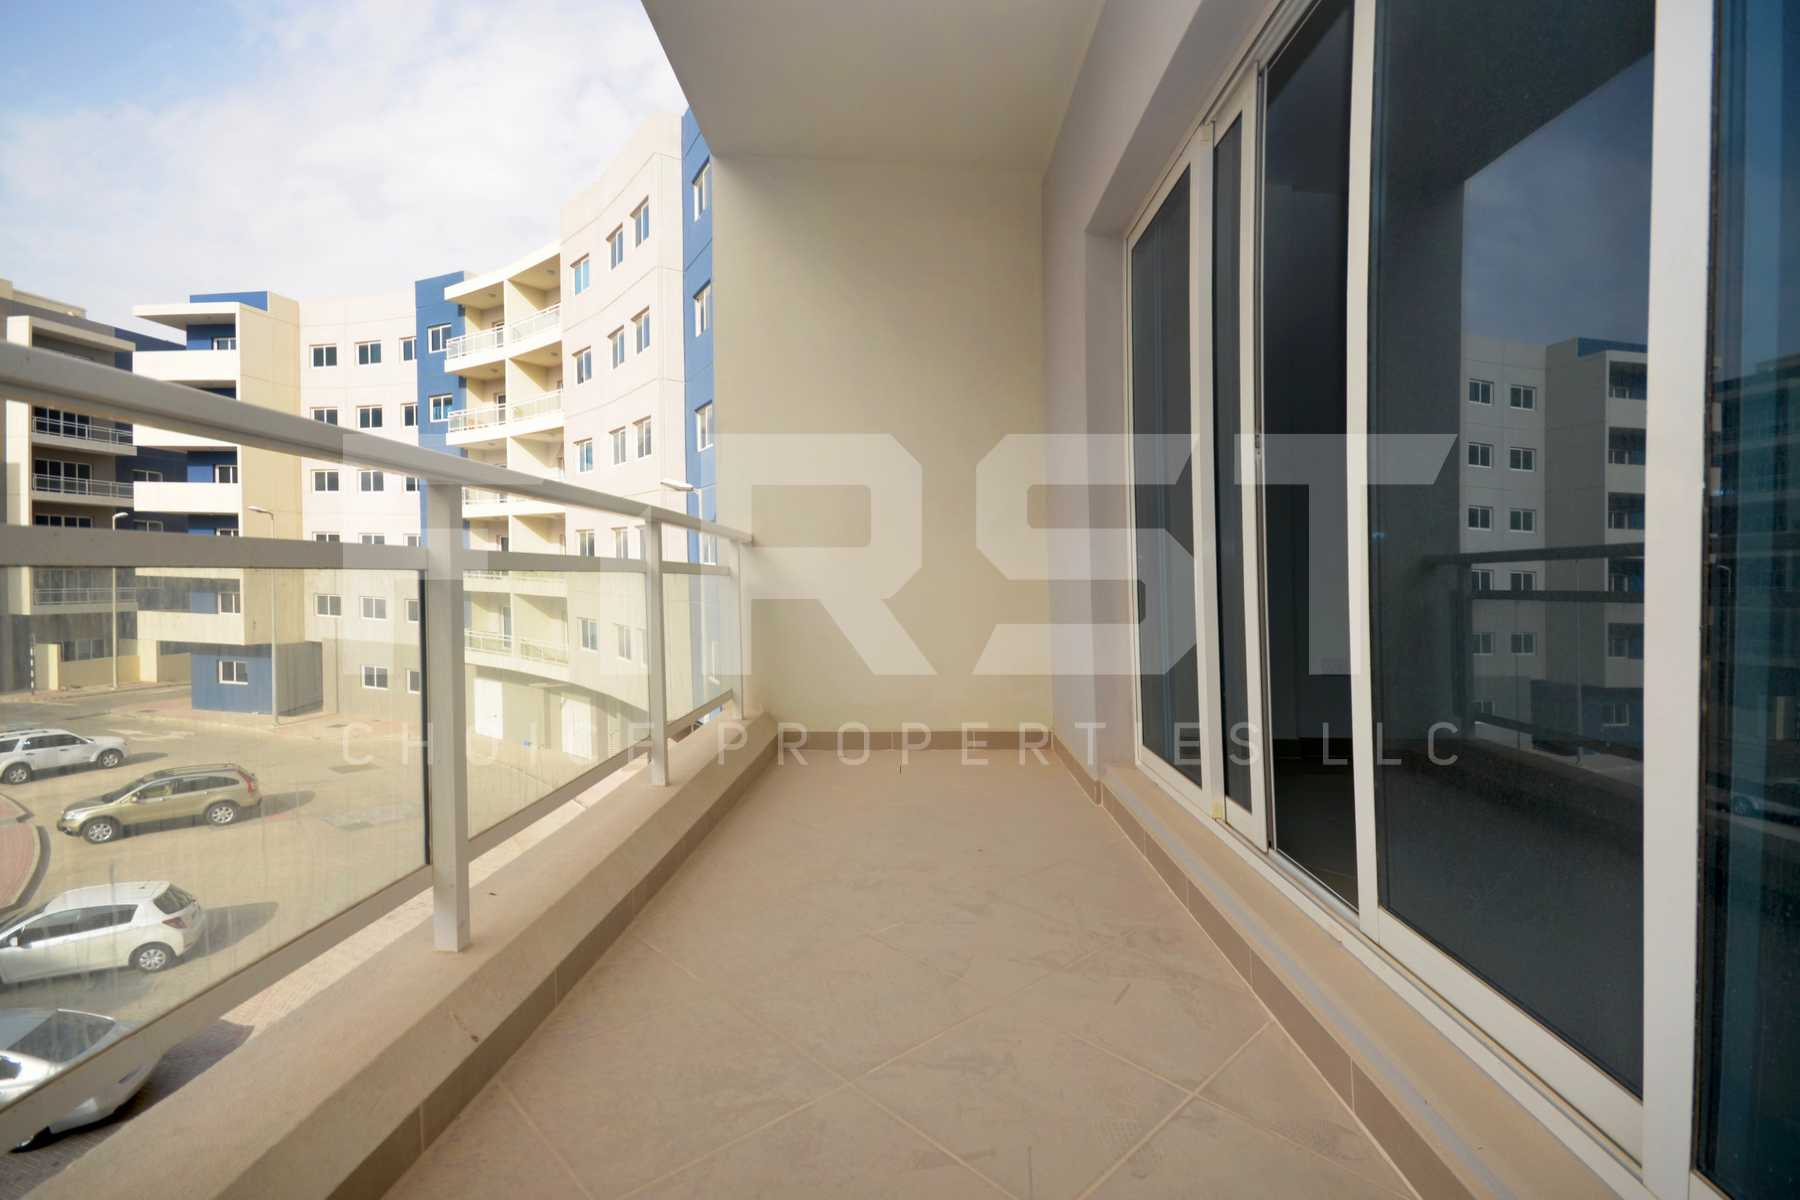 6. Internal Photo of 1 Bedroom Apartment Type C in Al Reef Downtown Al Reef Abu Dhabi UAE 103 sq.m 1108 sq.ft (9).jpg